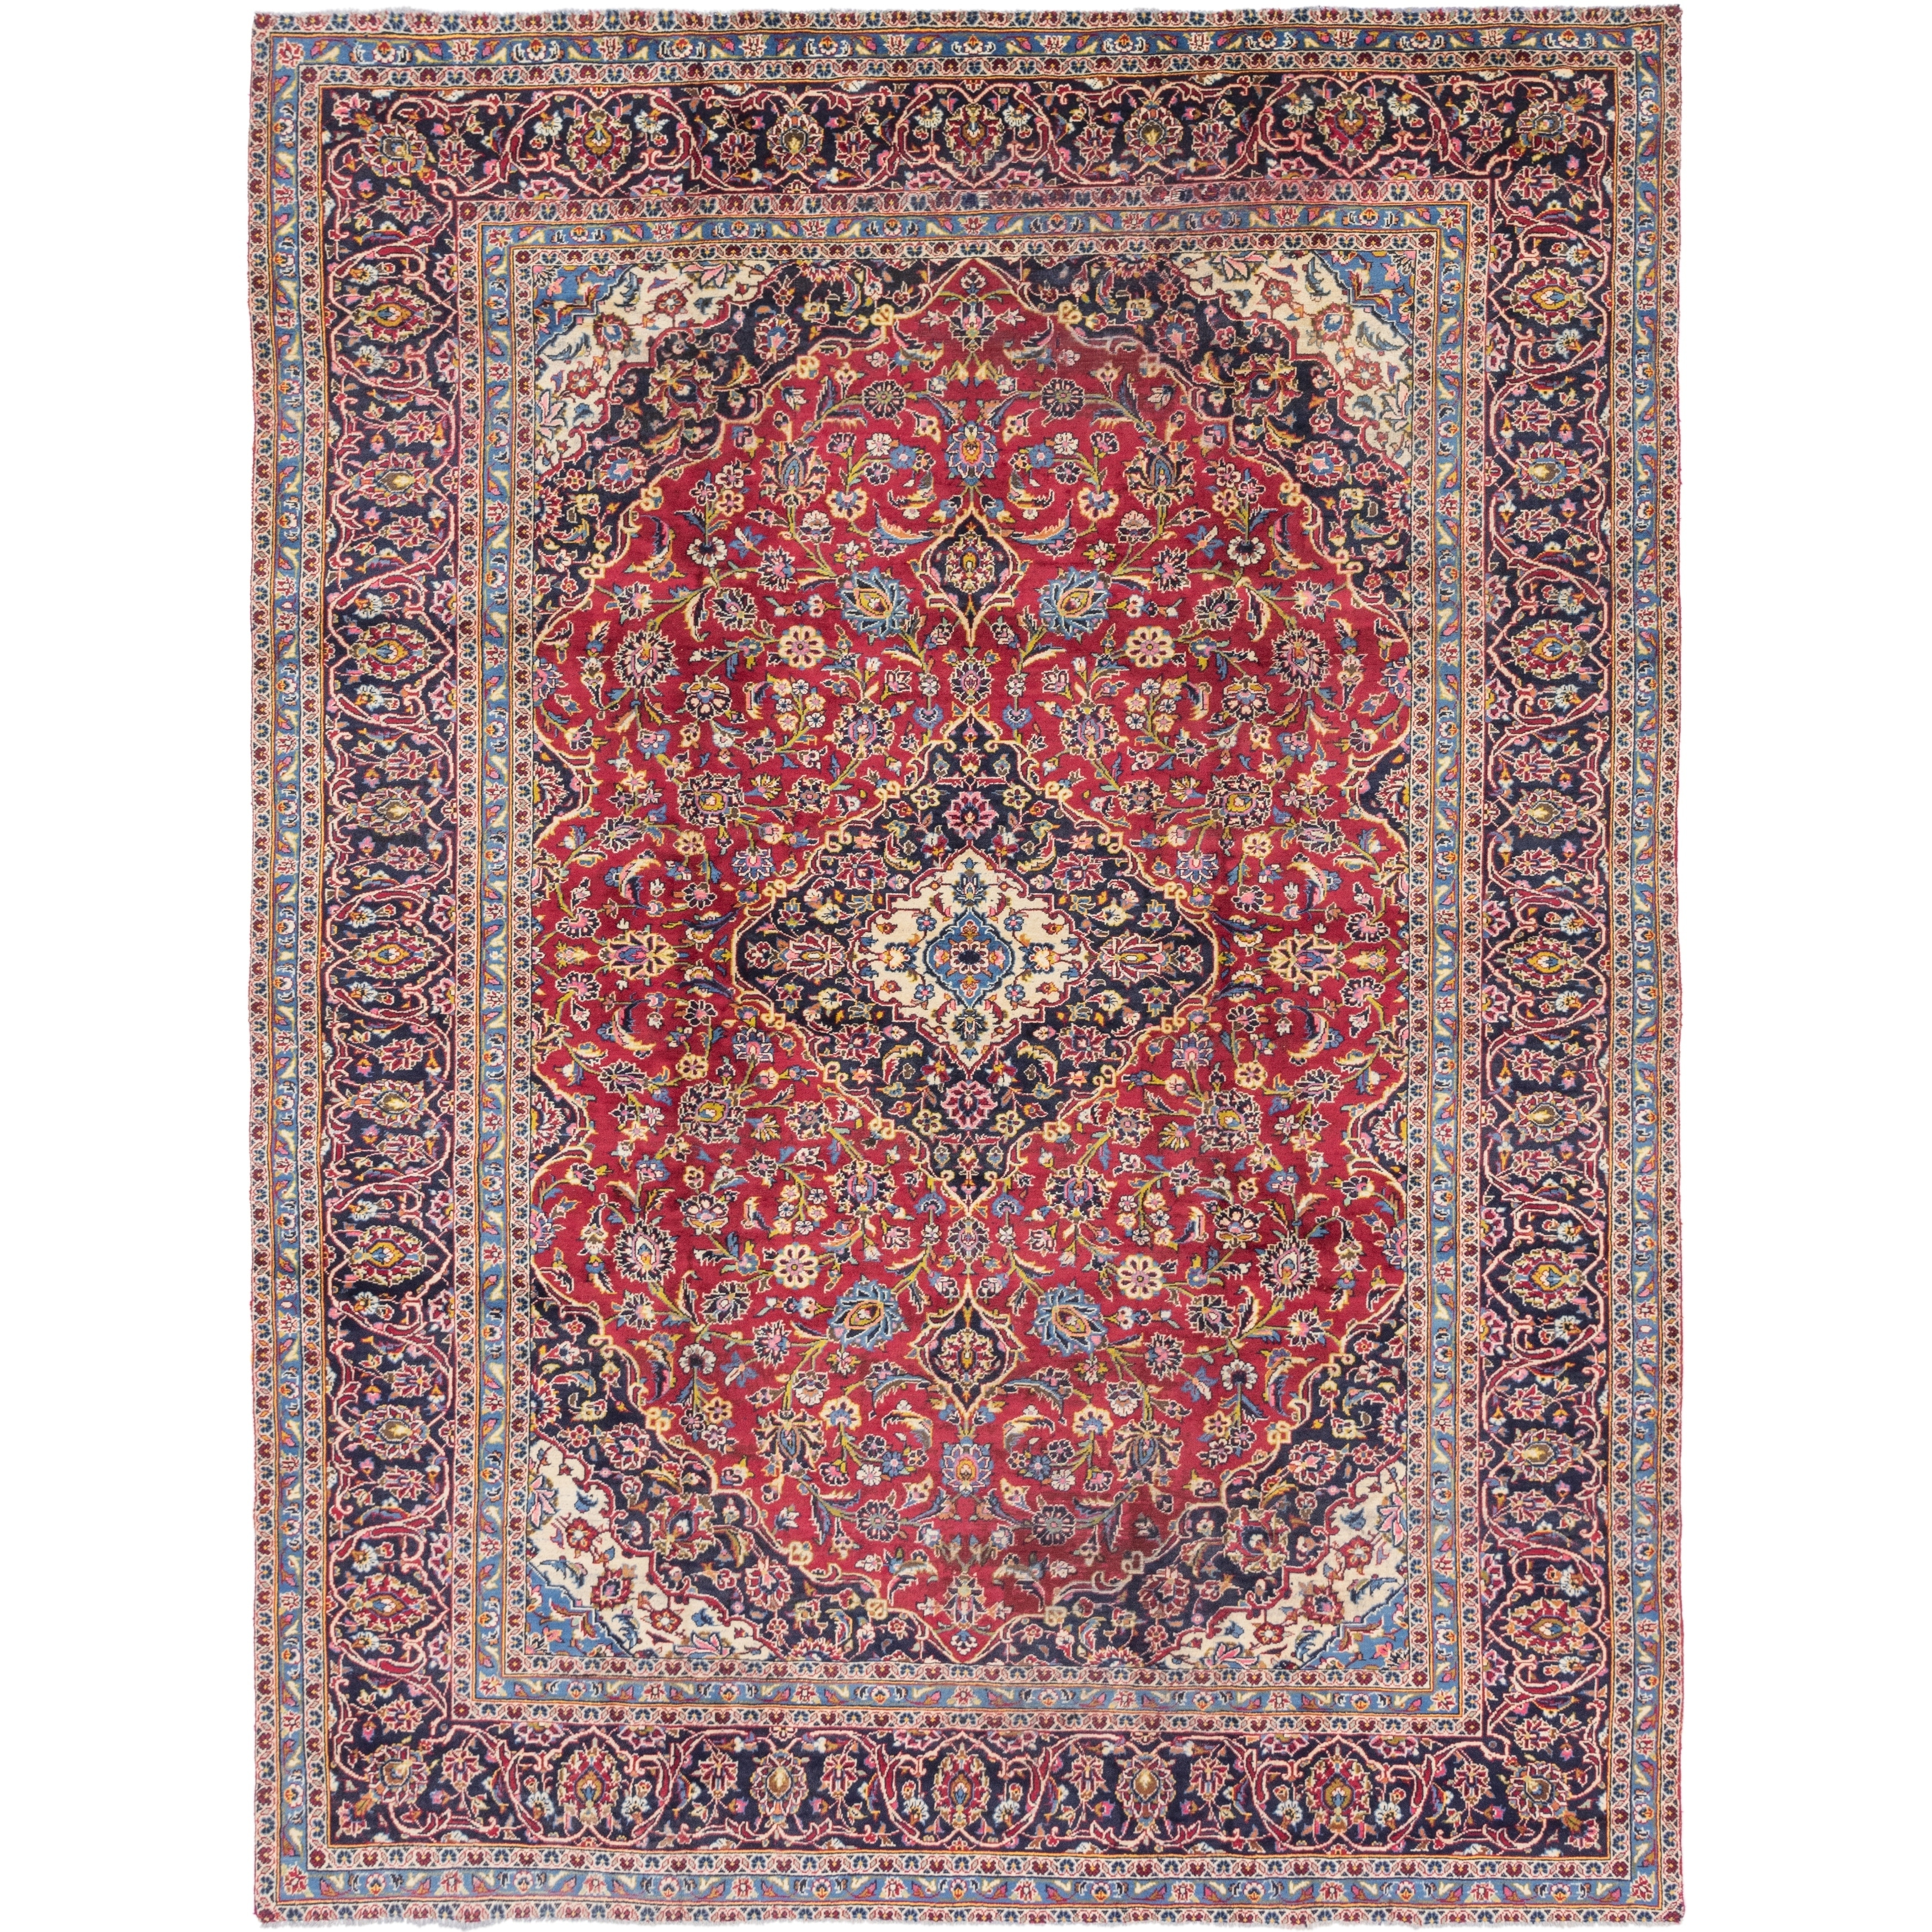 Hand Knotted Kashan Semi Antique Wool Area Rug - 9 6 x 12 7 (Red - 9 6 x 12 7)